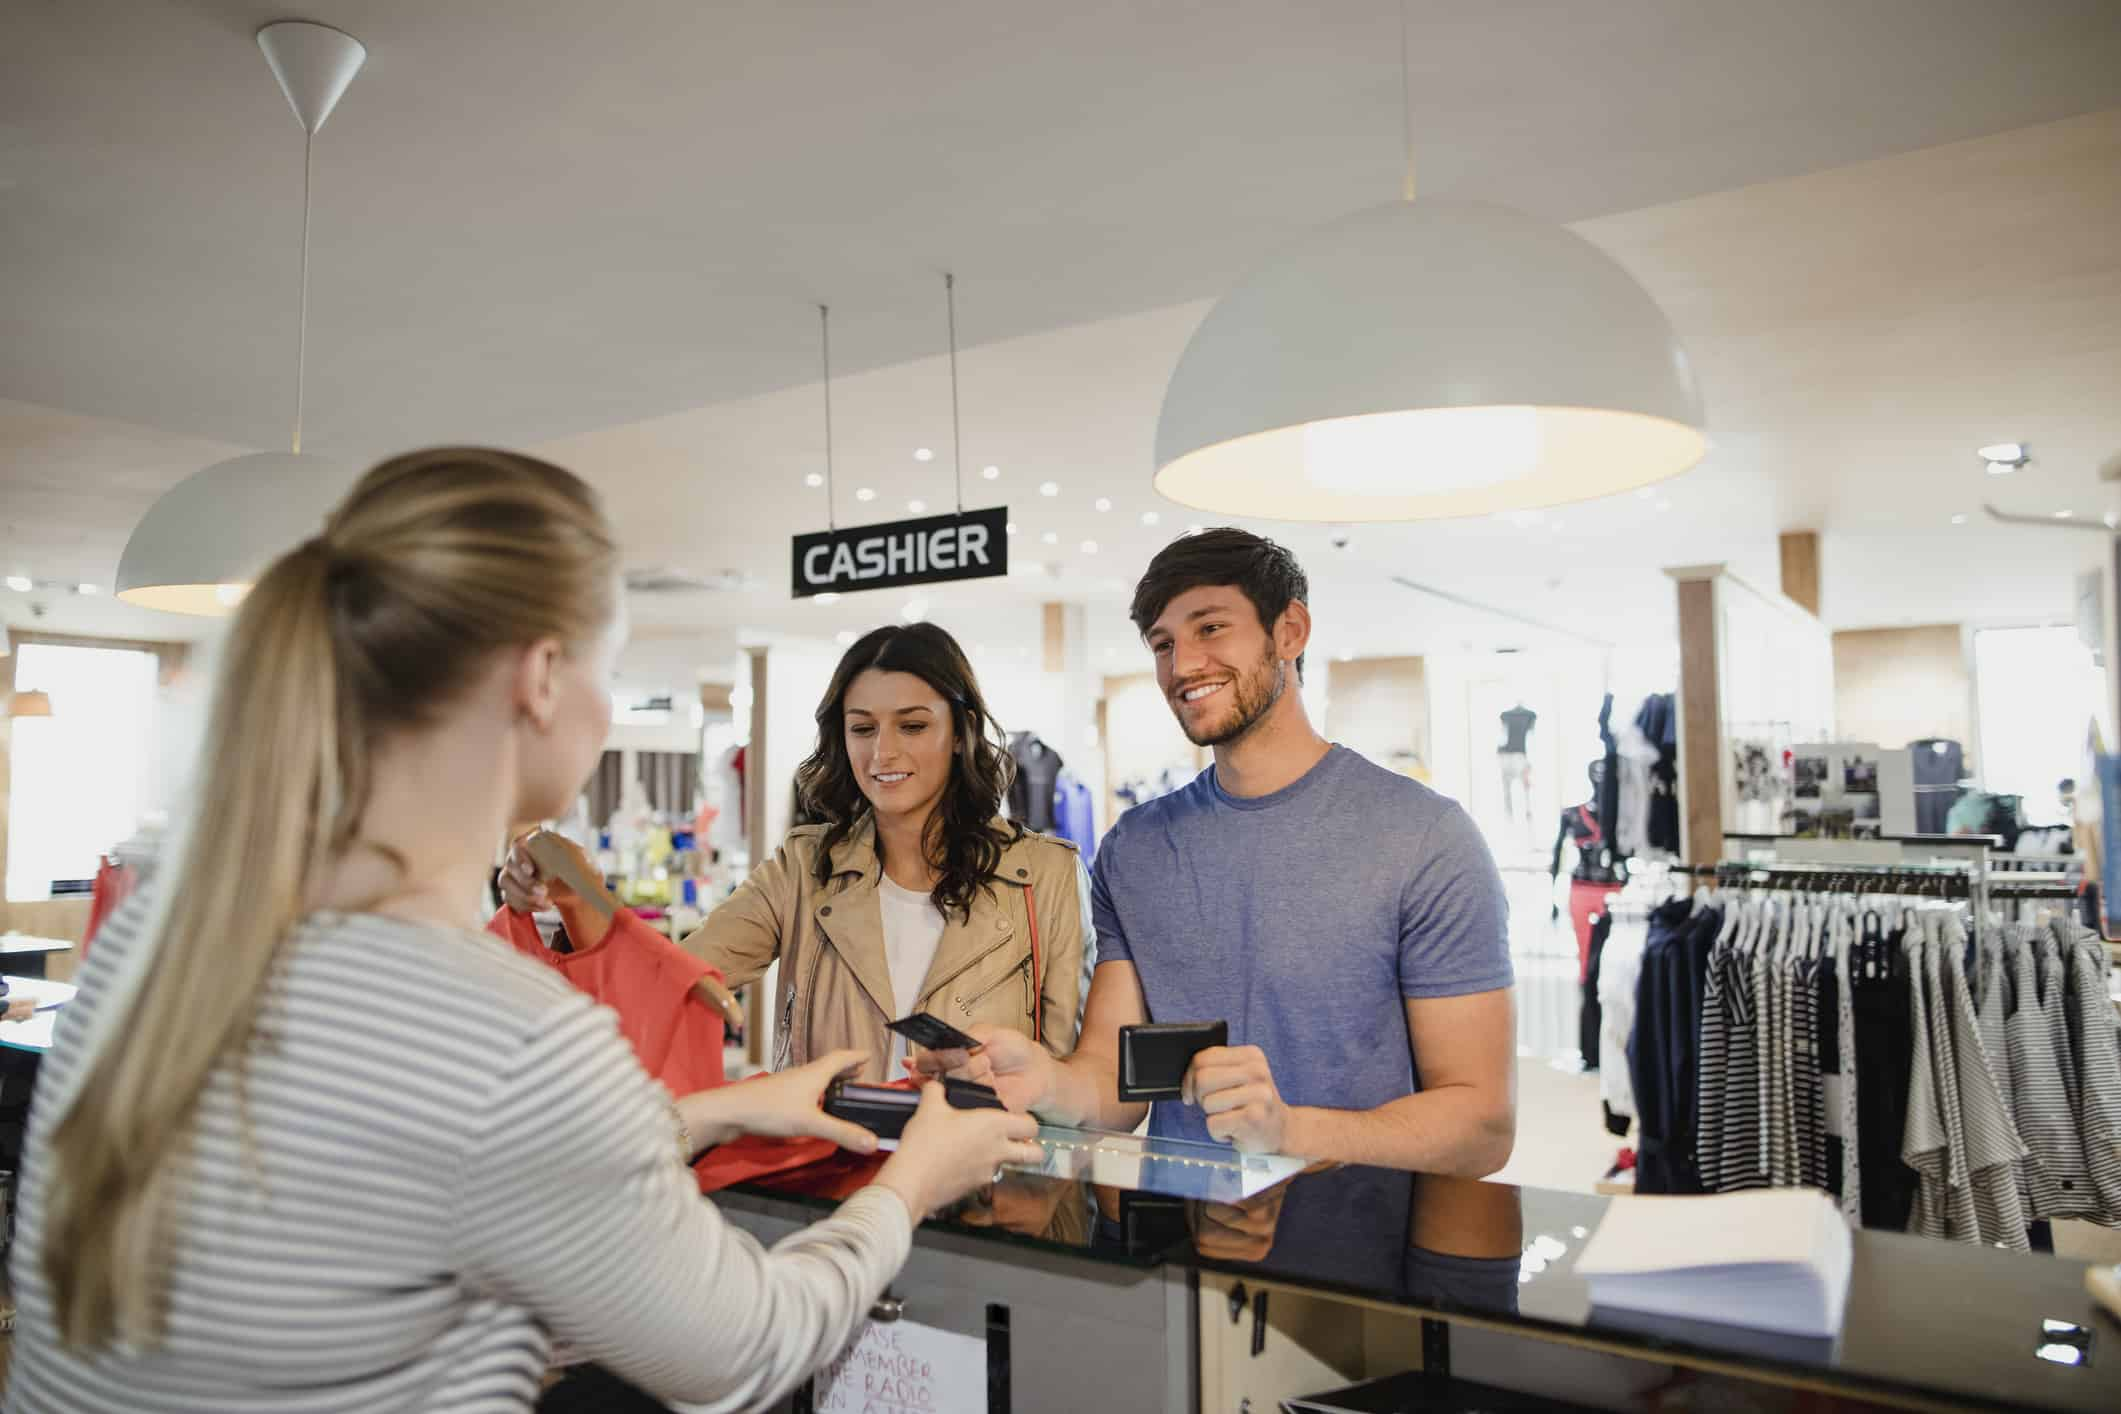 man paying for clothes in one of the highest retail store credit card debt cities